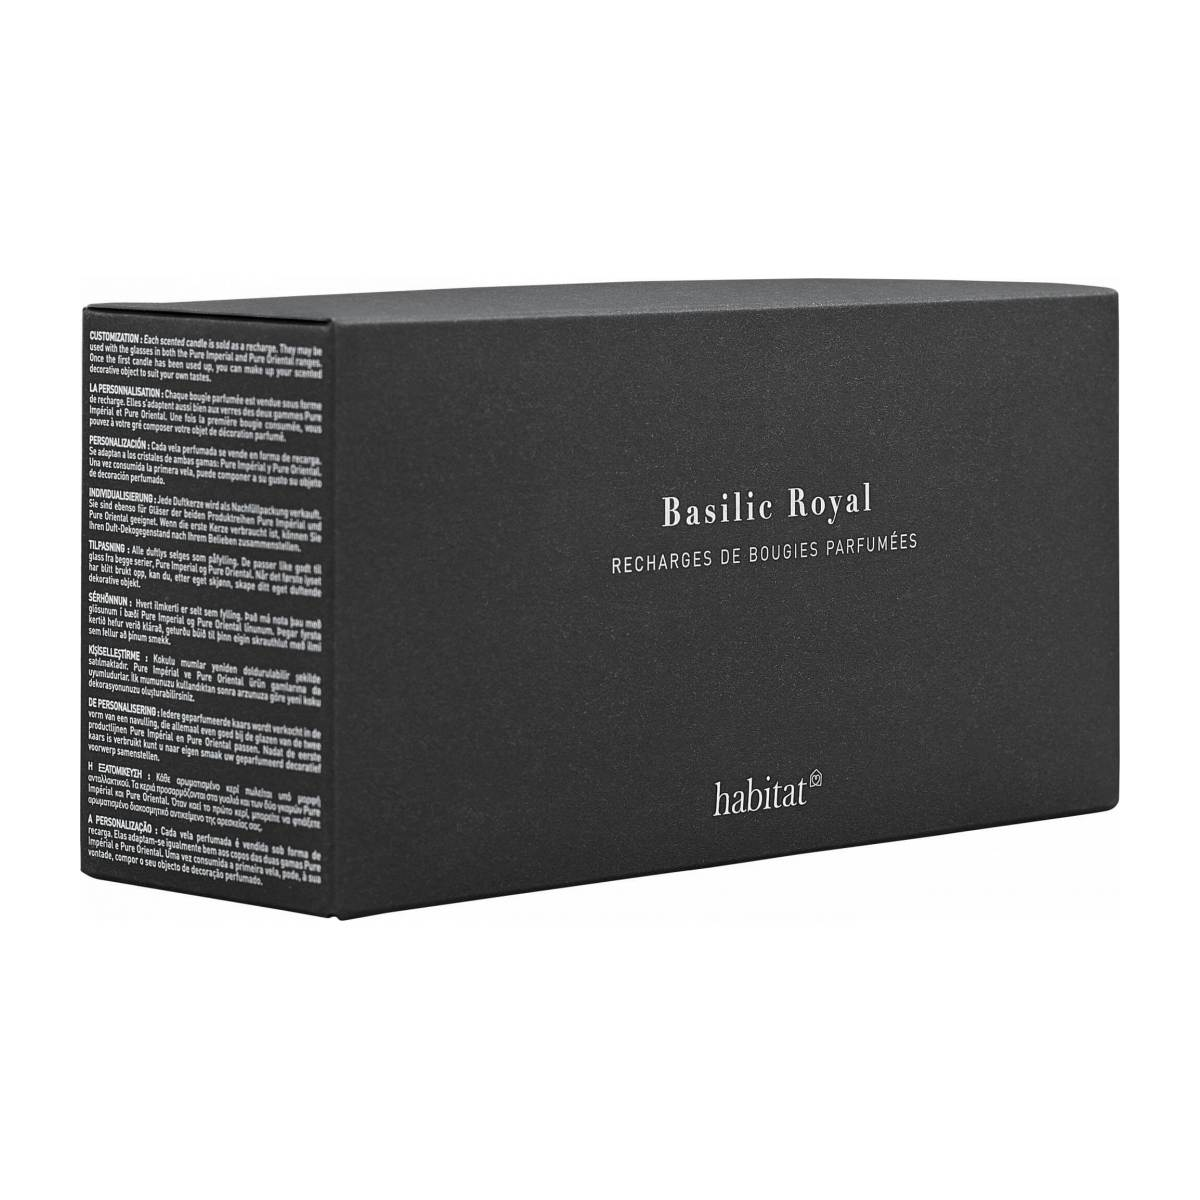 Refill for 3 small Basil scented candles, 3 x 150g n°4